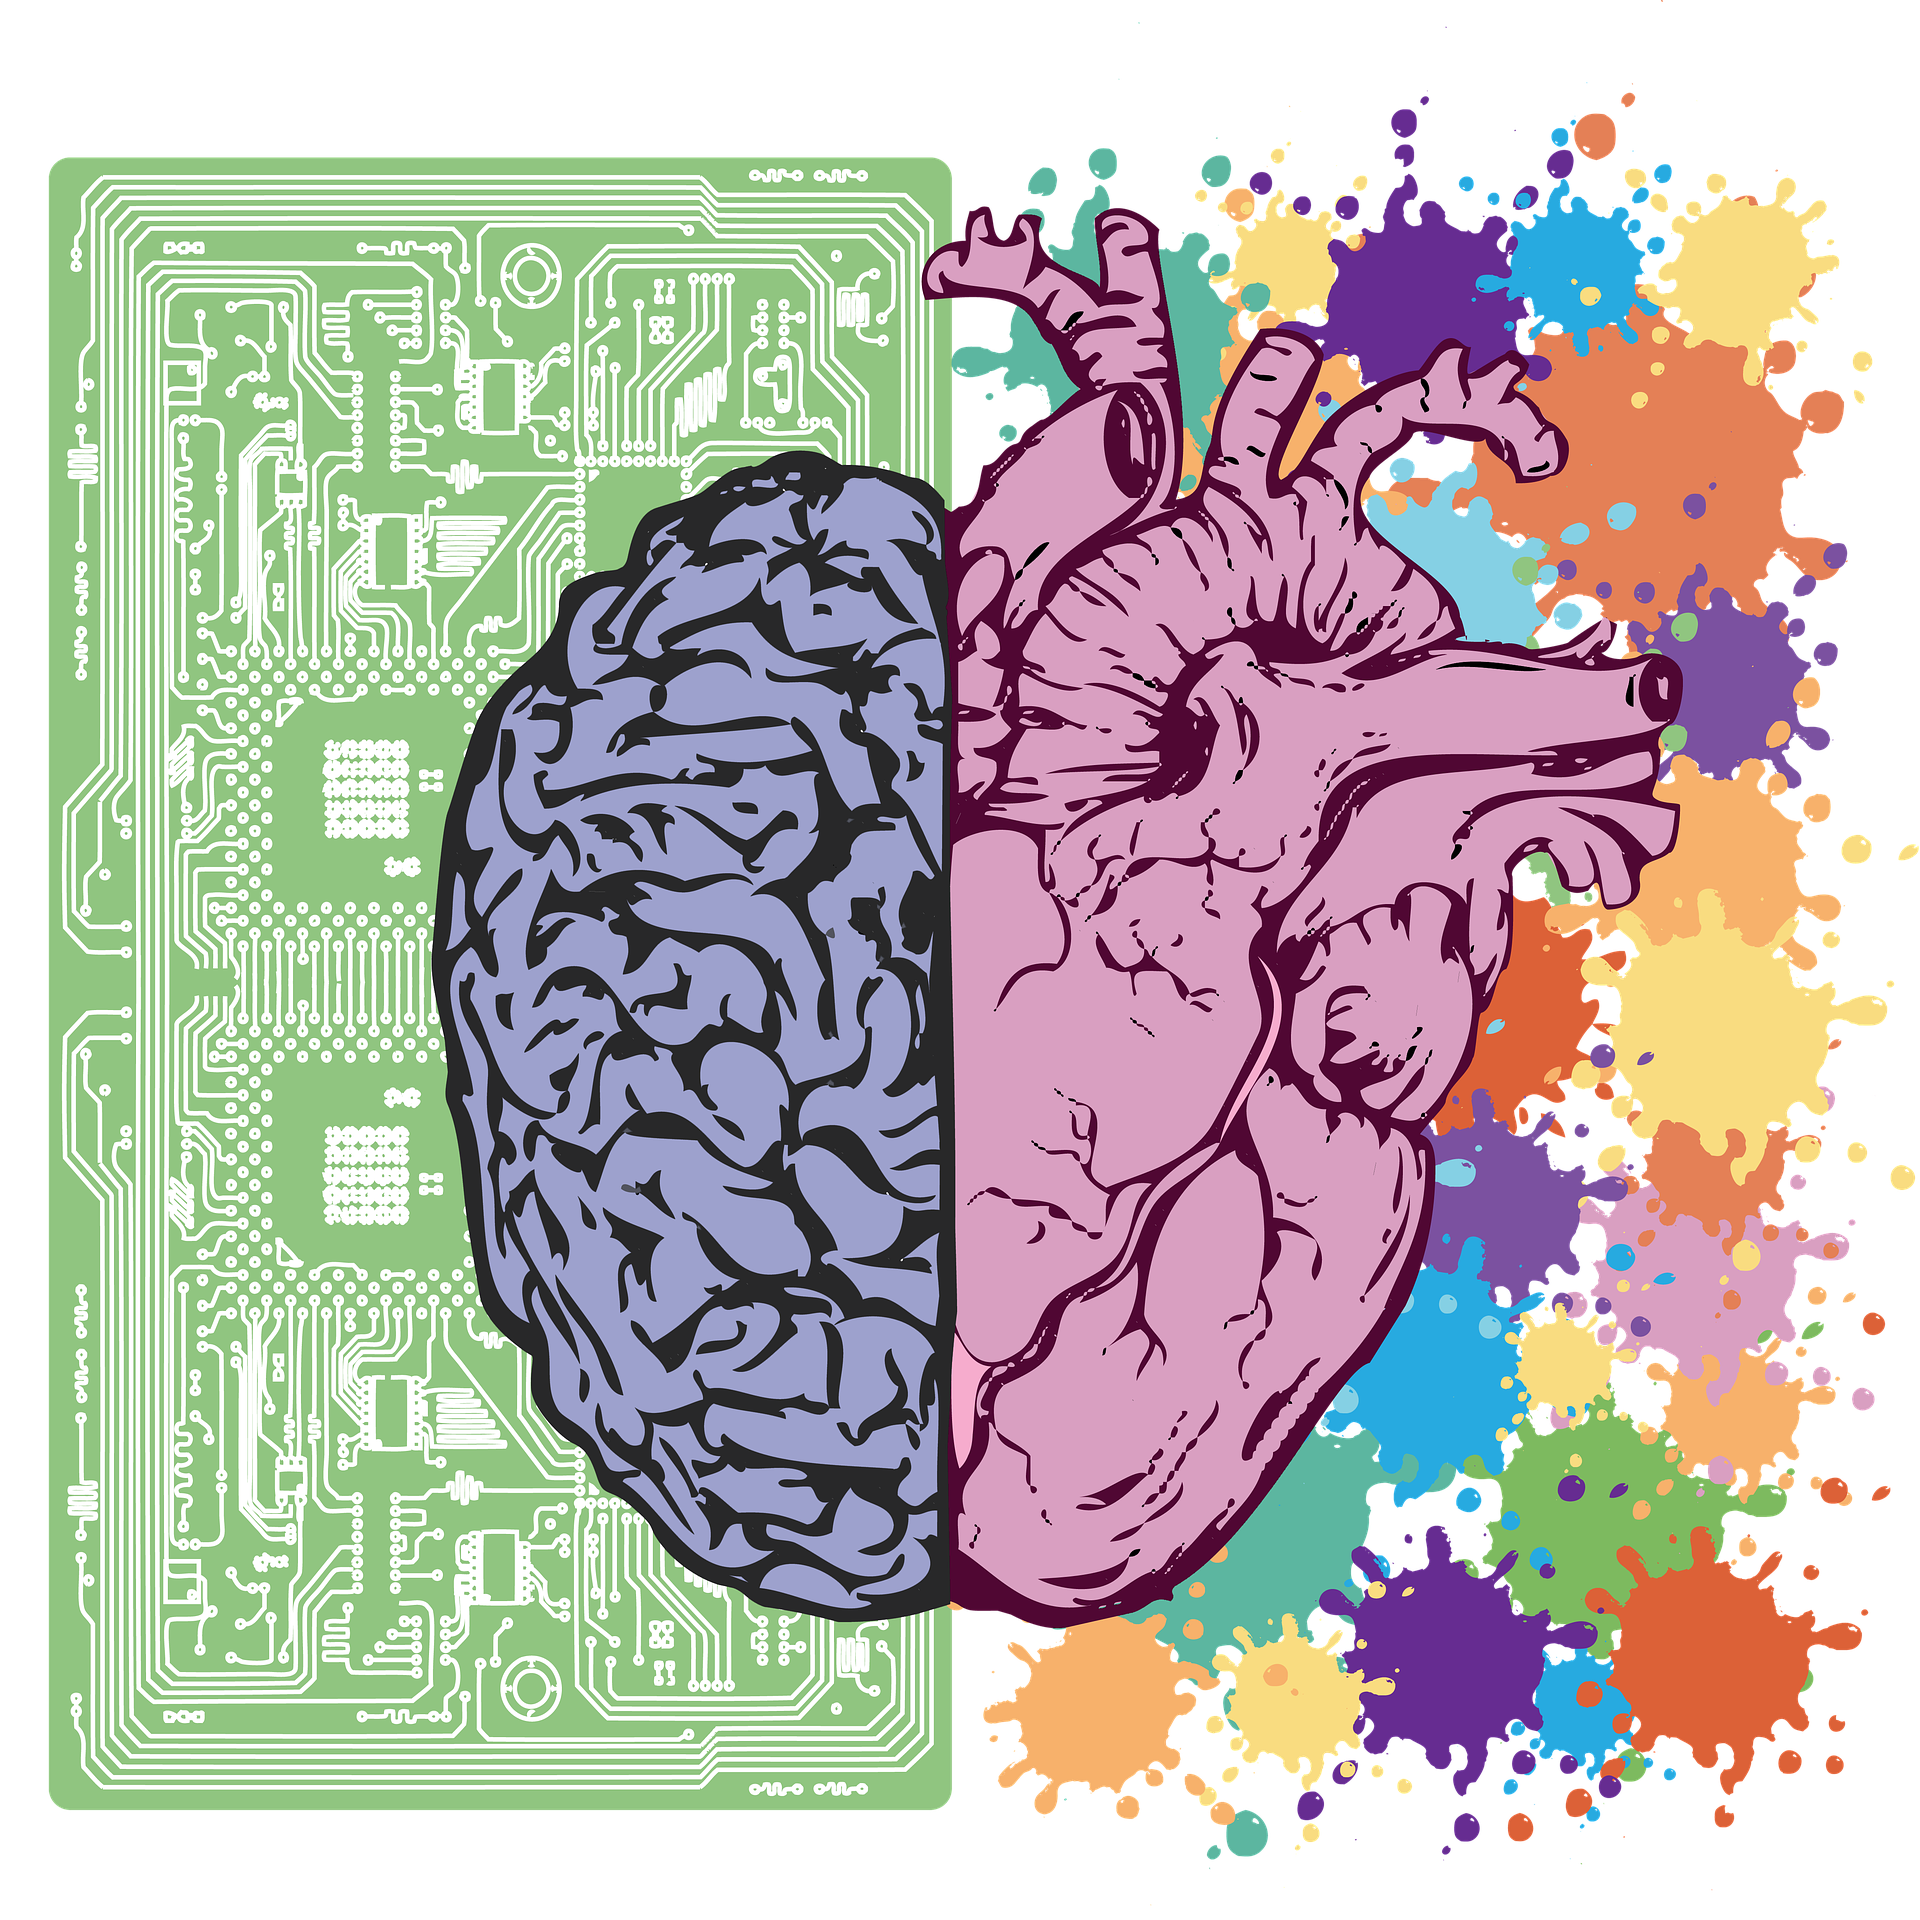 The right and left hemispheres of the brain with each side a different color.  The left side is drawn against the background of a computer chip and the right against a background of splashes of different bright colors.